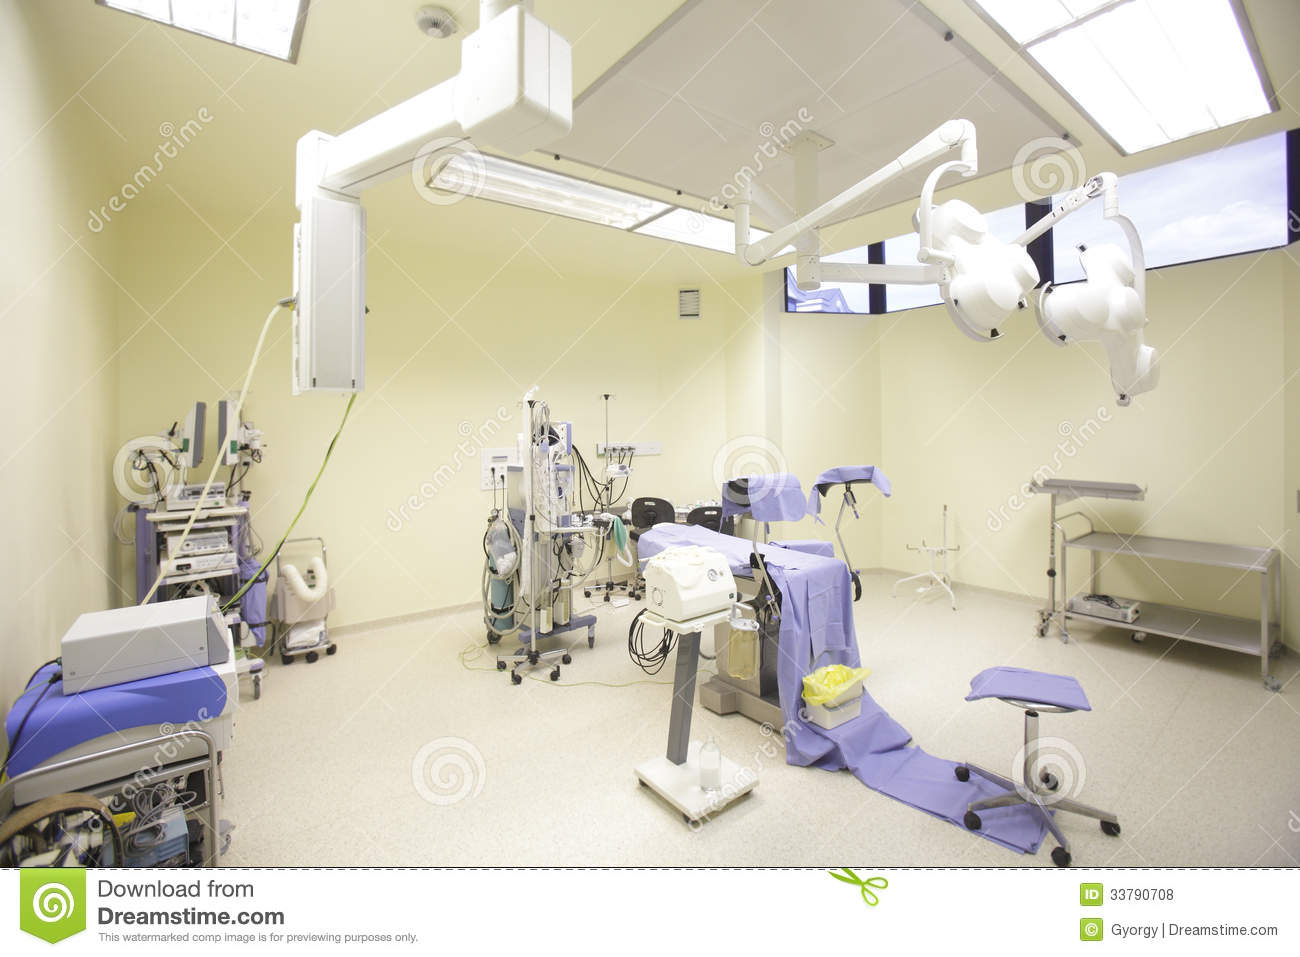 Hospital operating room - Operating Room Royalty Free Stock Photos